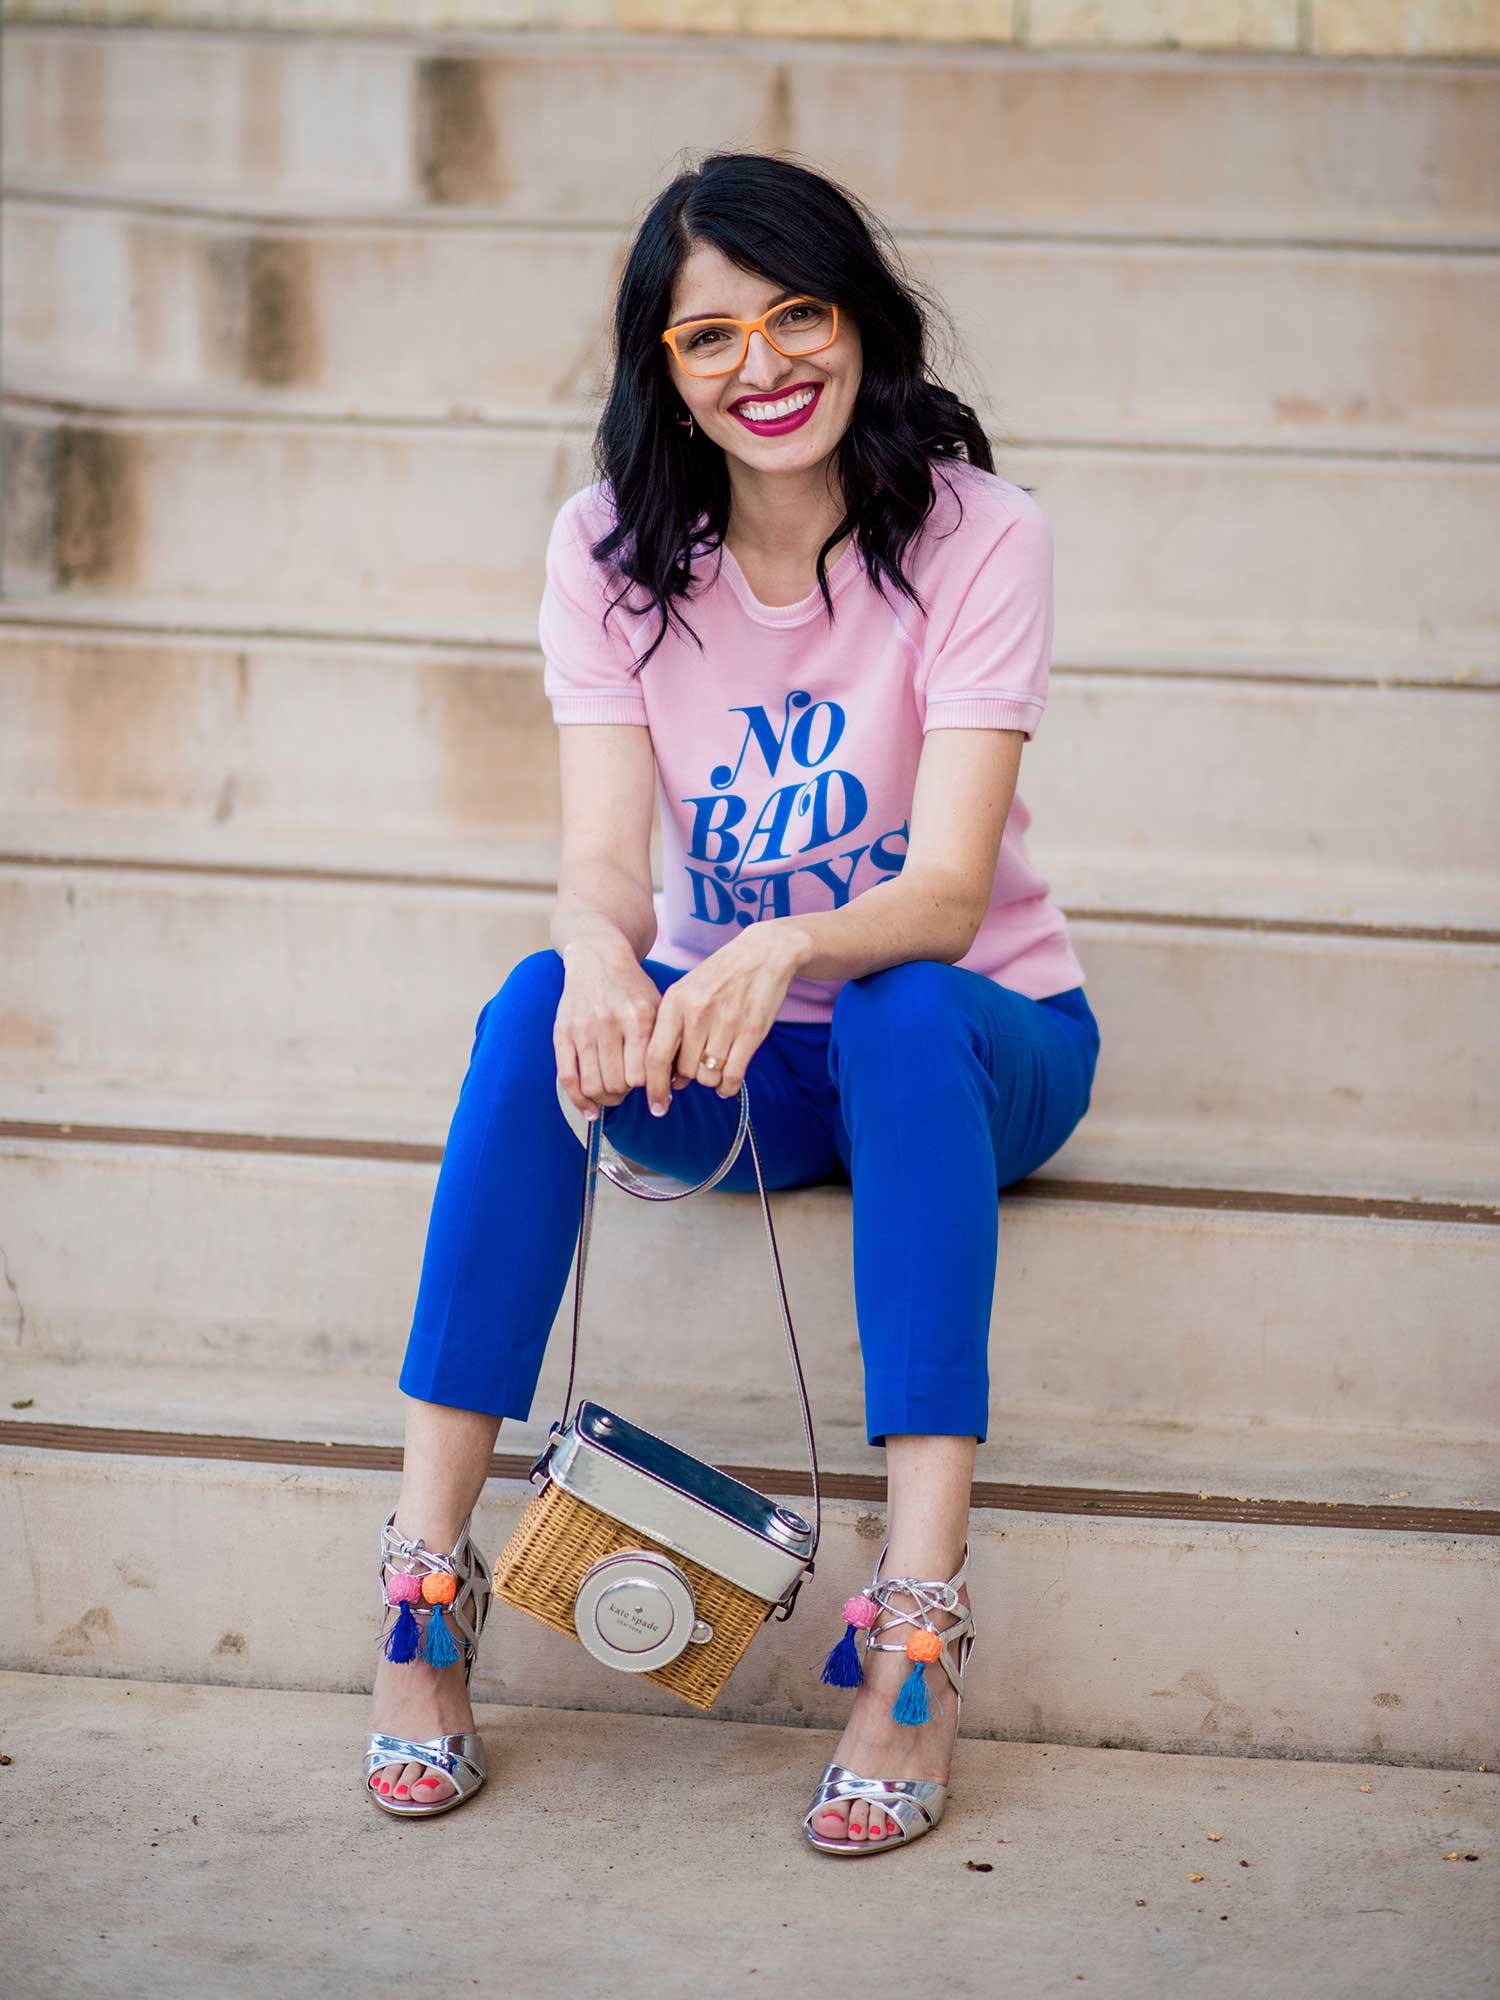 Jenna-Pilant-San-Diego-Style-Blogger-Lucky-Little-Mustardseed-How-To-Style-Ban.do's-'No-Bad-Days'-Sweater-3